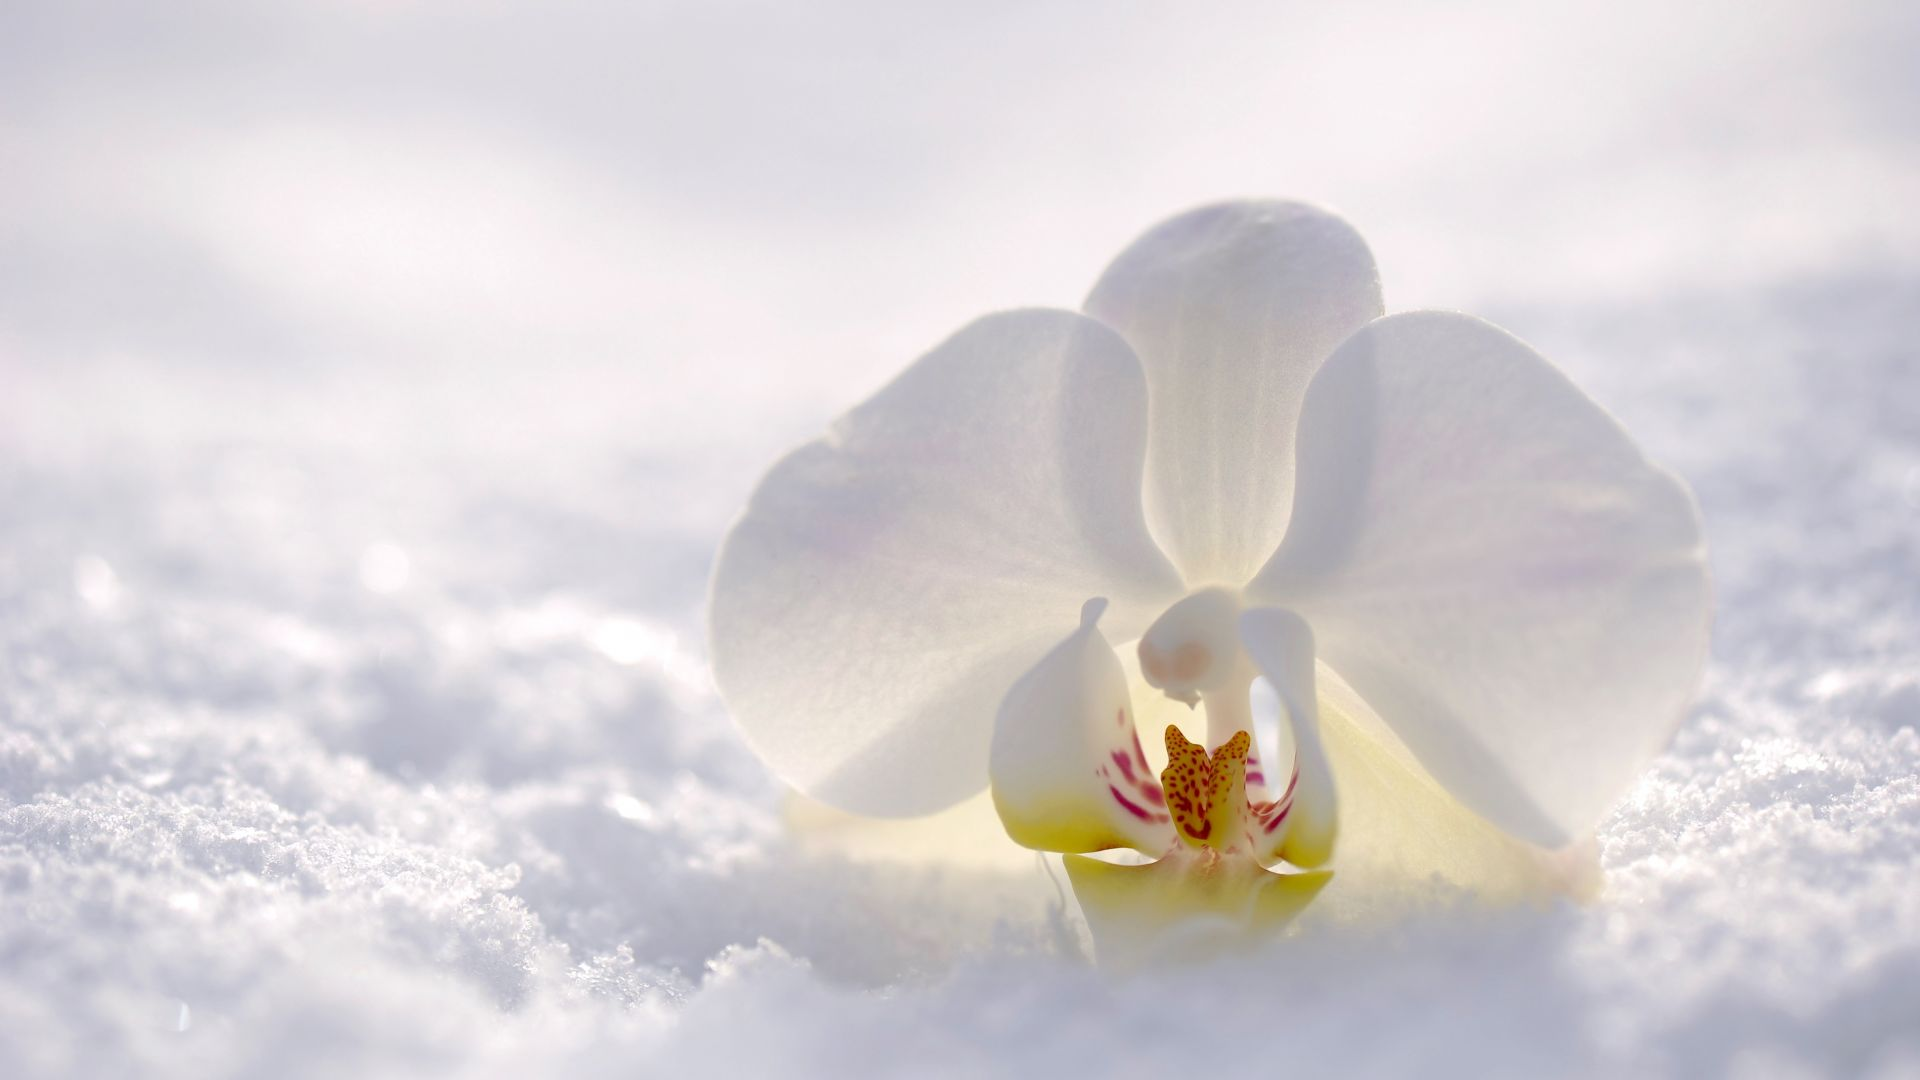 Wallpaper Orchid Flower Snow Winter White 4k Nature